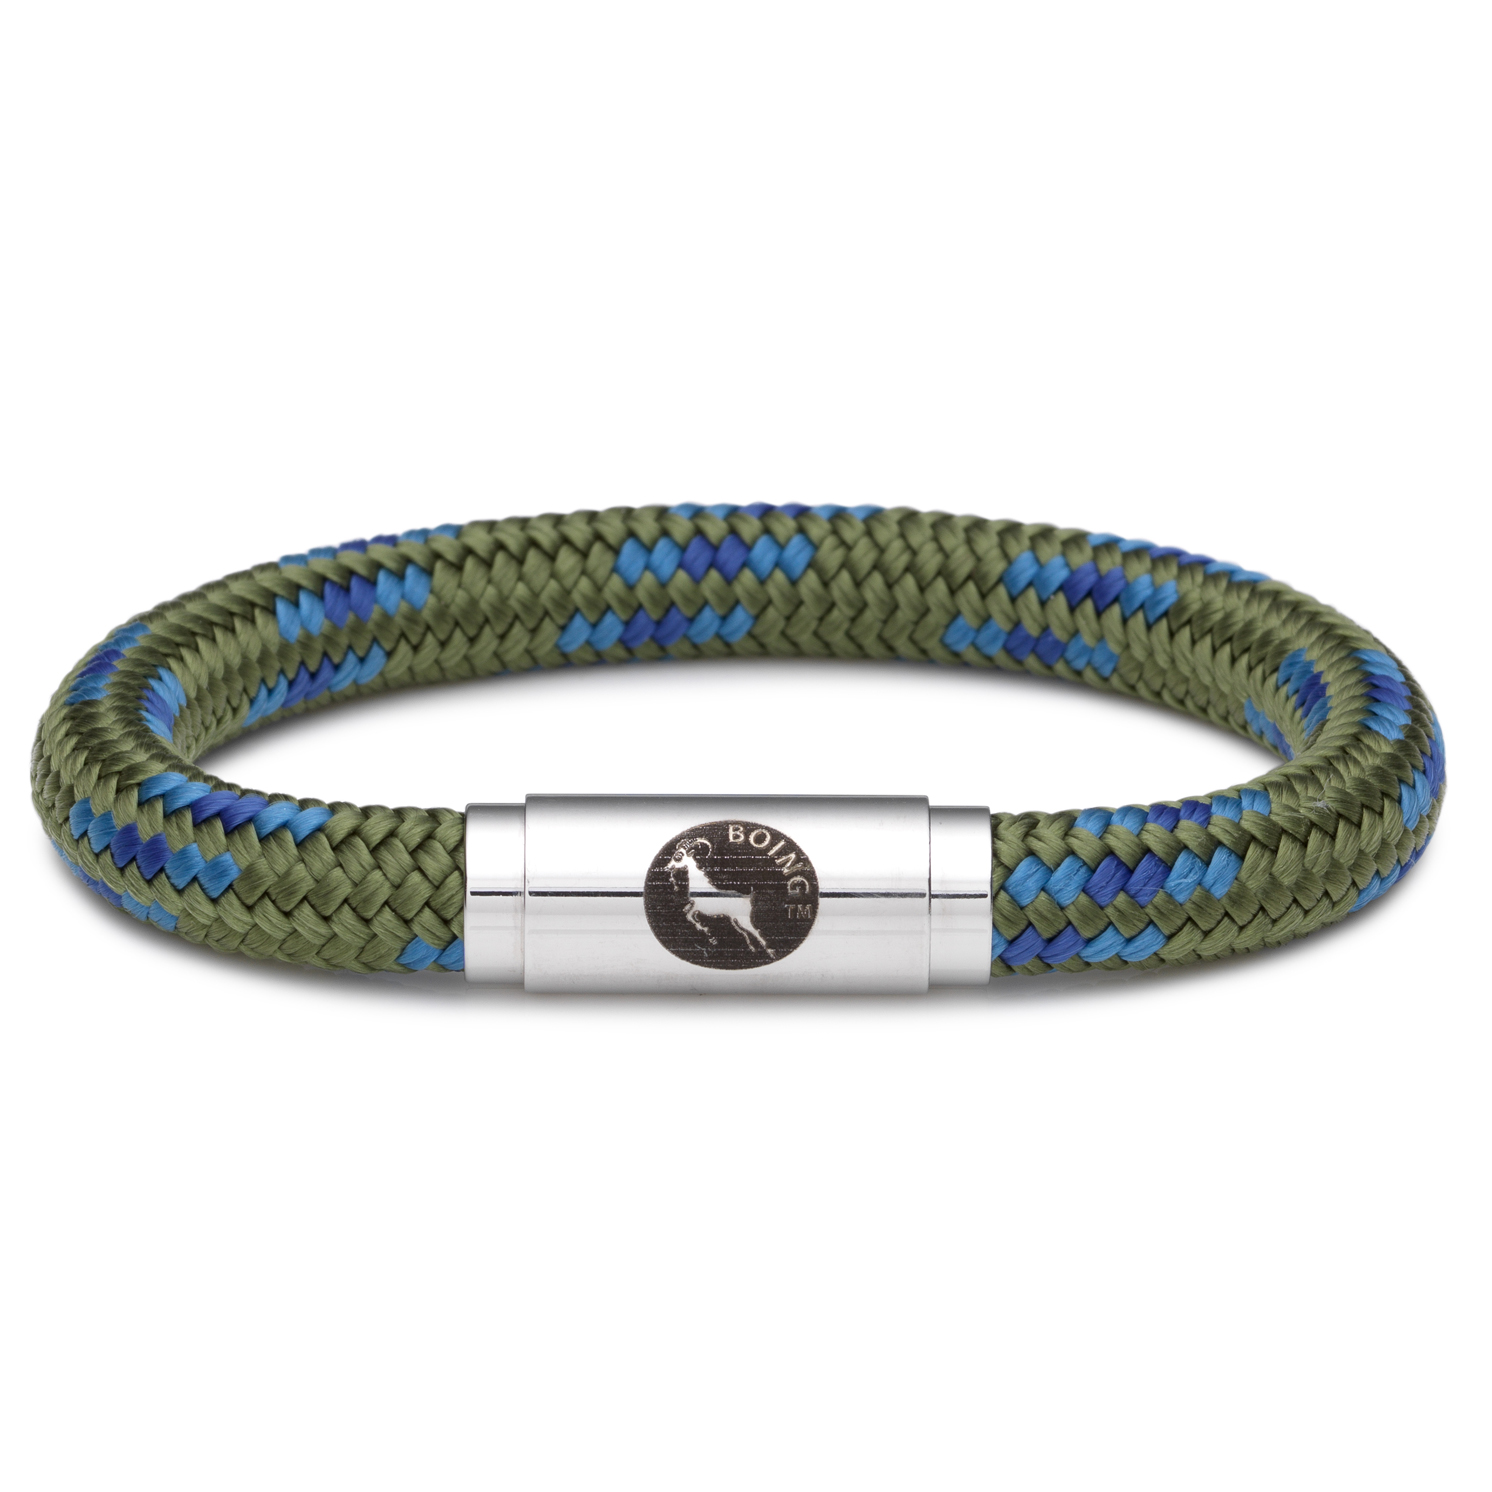 Boing – Middy XXLarge Wristband in Peacock